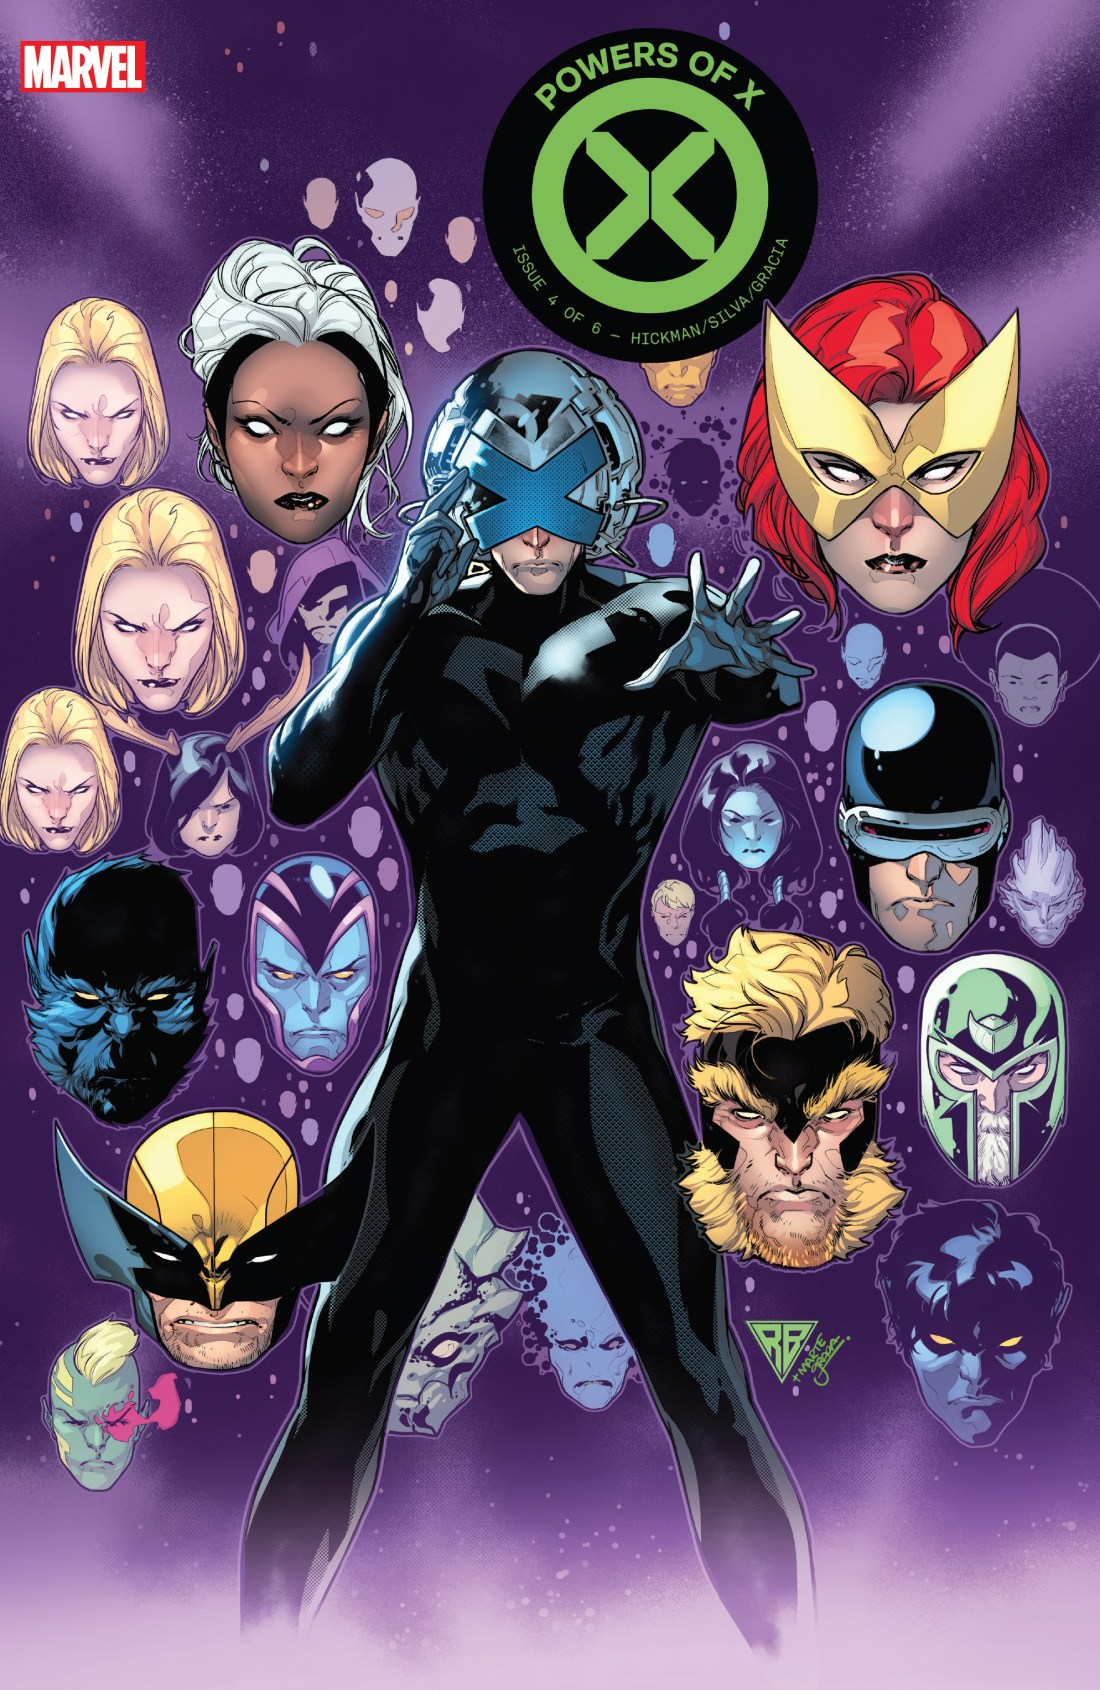 The cover of Powers of X #4, art by RB Silva.